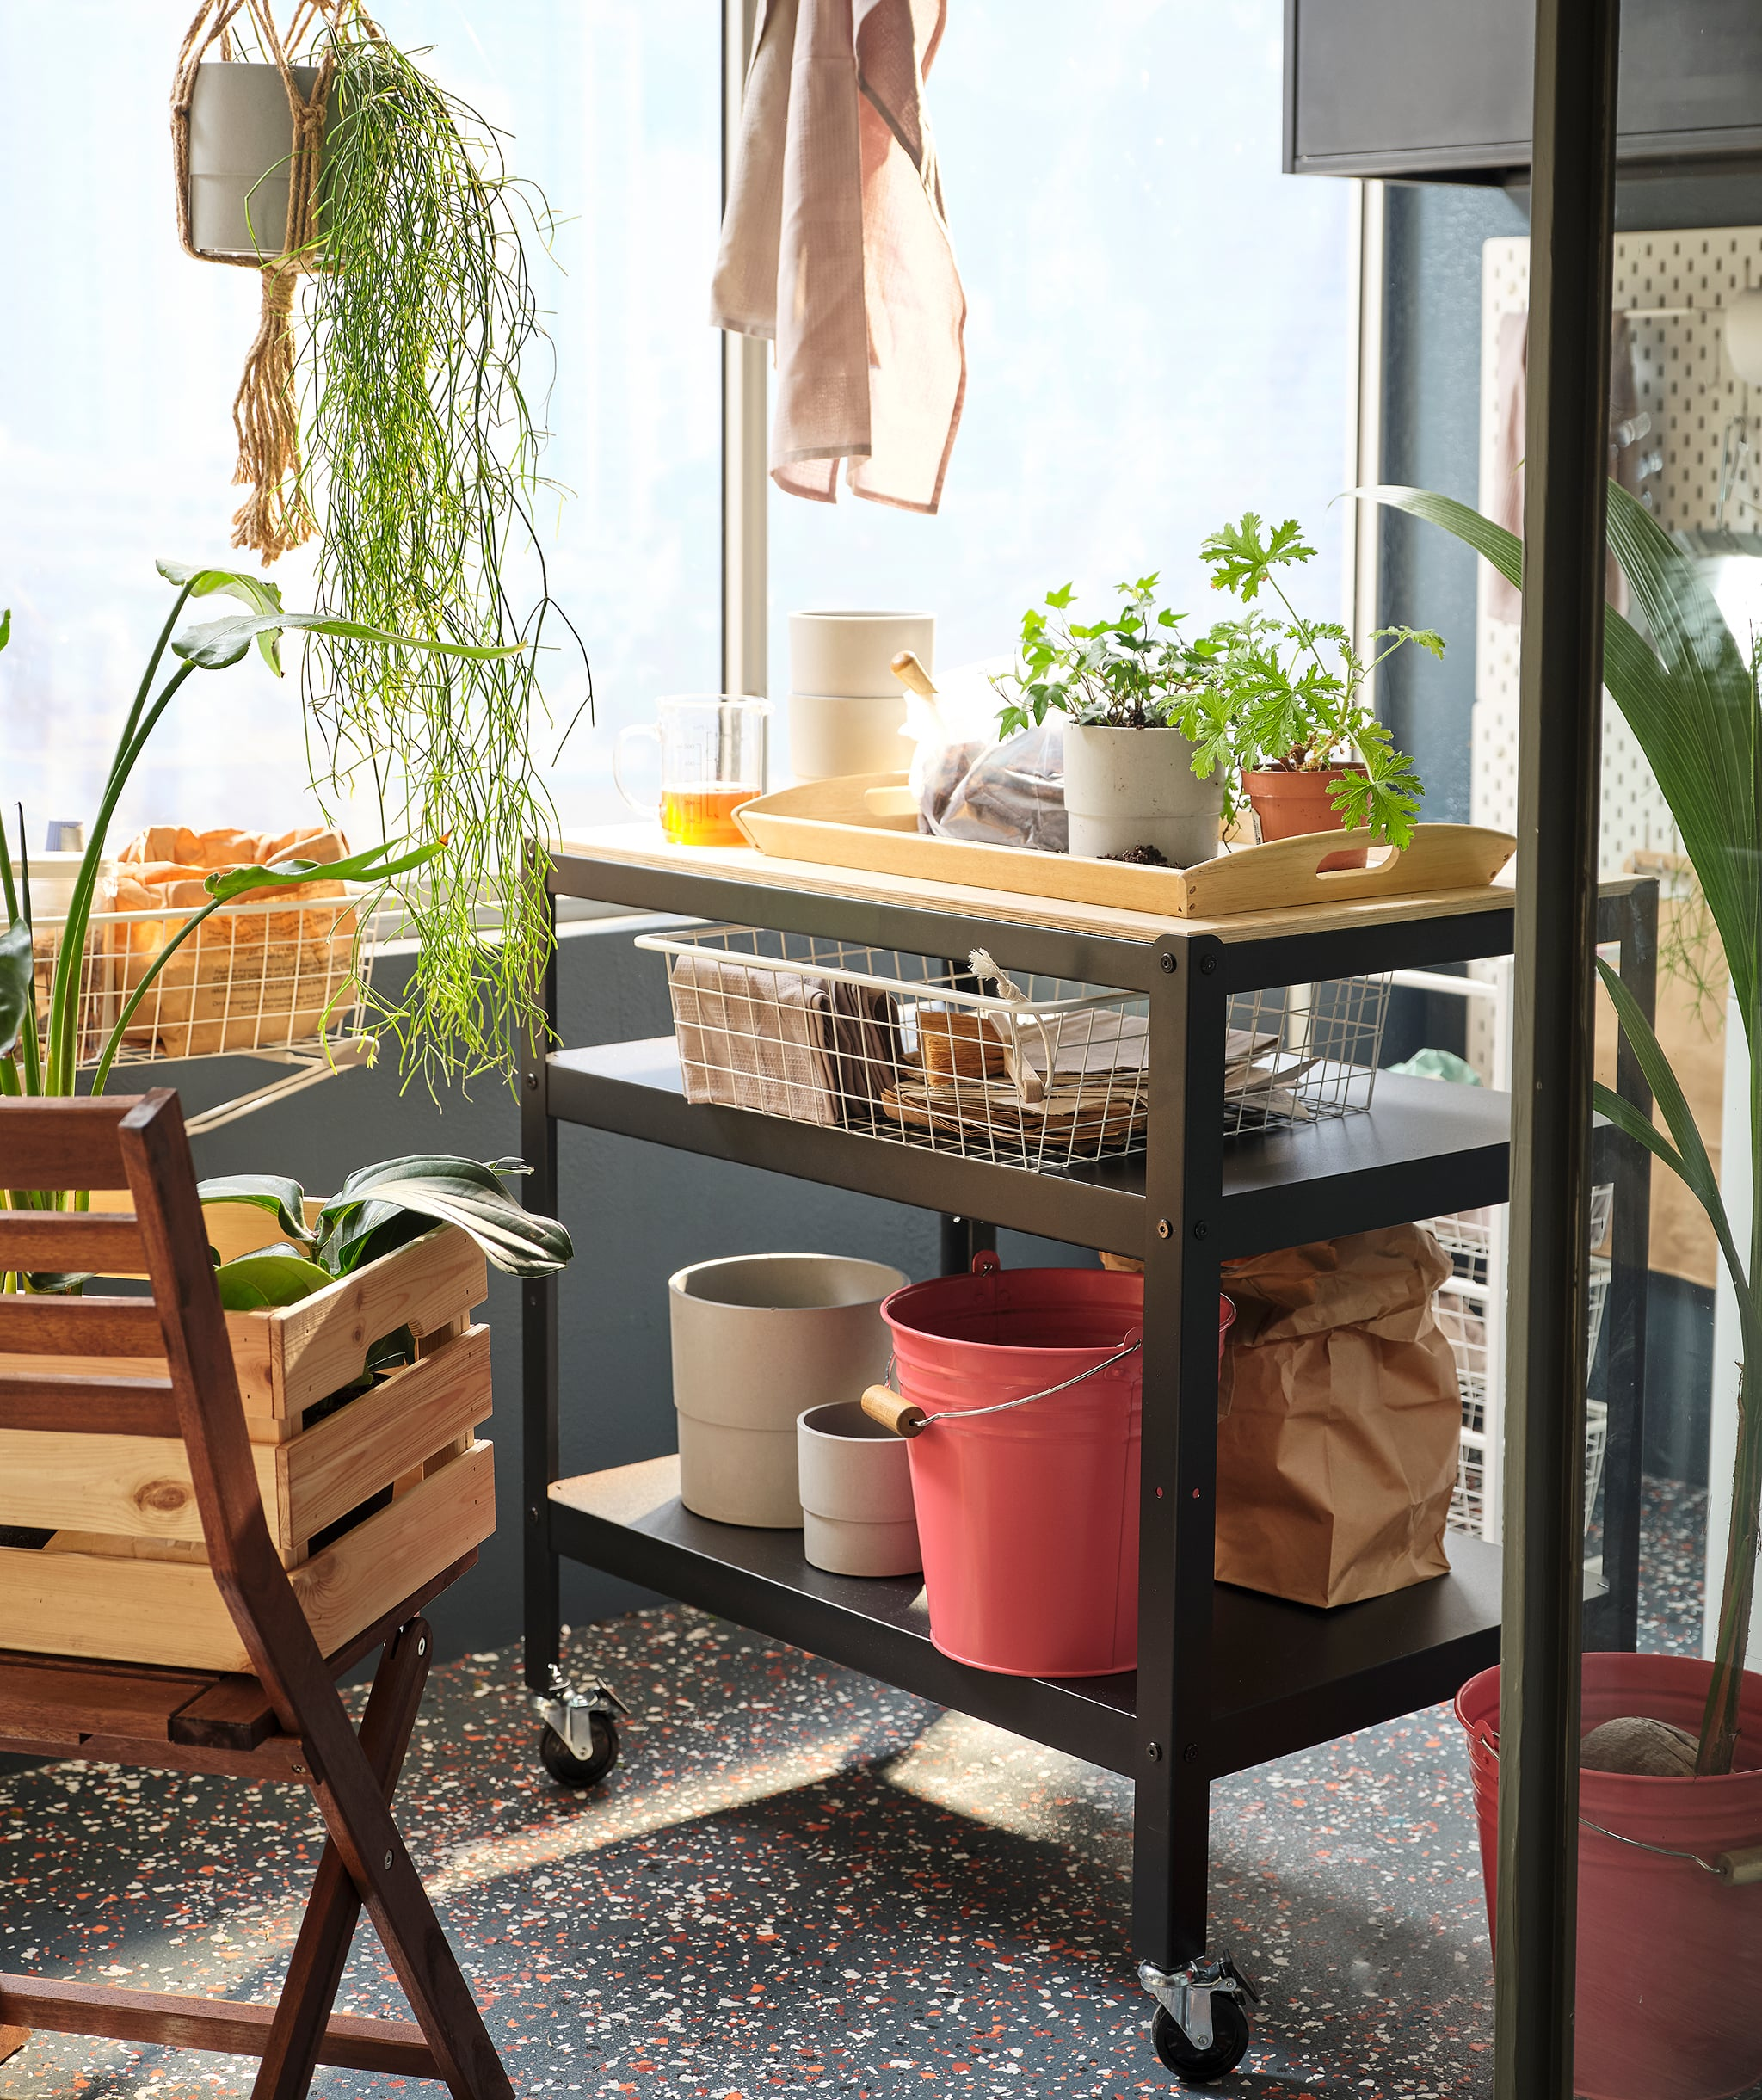 Balcony with a minute sideboard created by a chopping board placed on SKRÄLL hooks; tea and a plant pot on it, chairs beside.